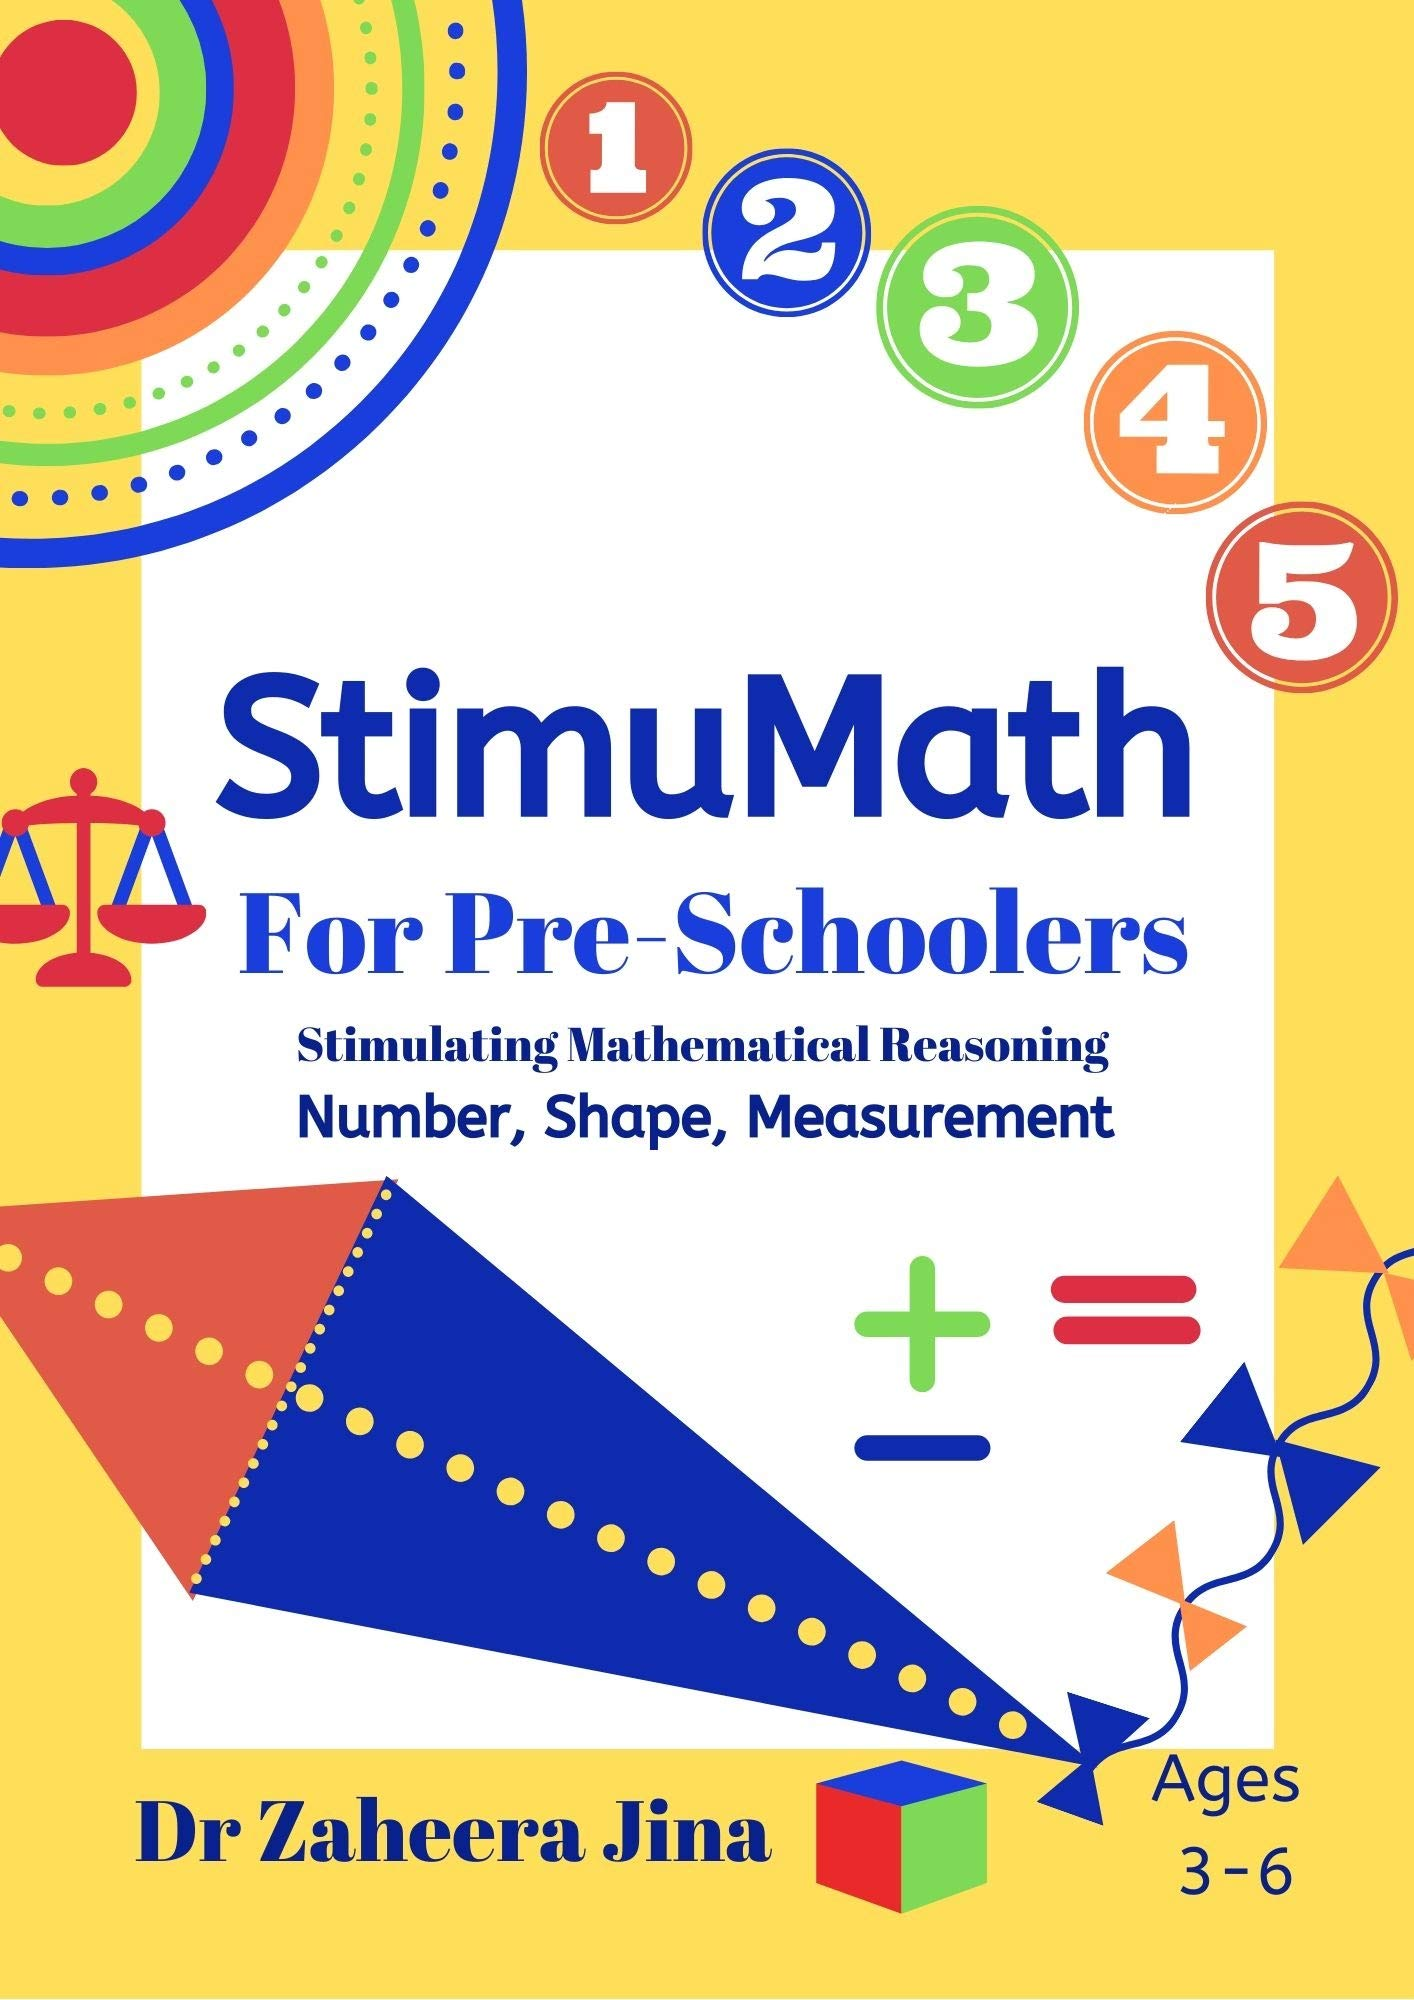 StimMath for Pre-schoolers Activity Book: Stimulating Mathematical Reasoning (This book is the activity book and needs to be used in conjunction with StimuMath for Pre-Schoolers Resource Book)